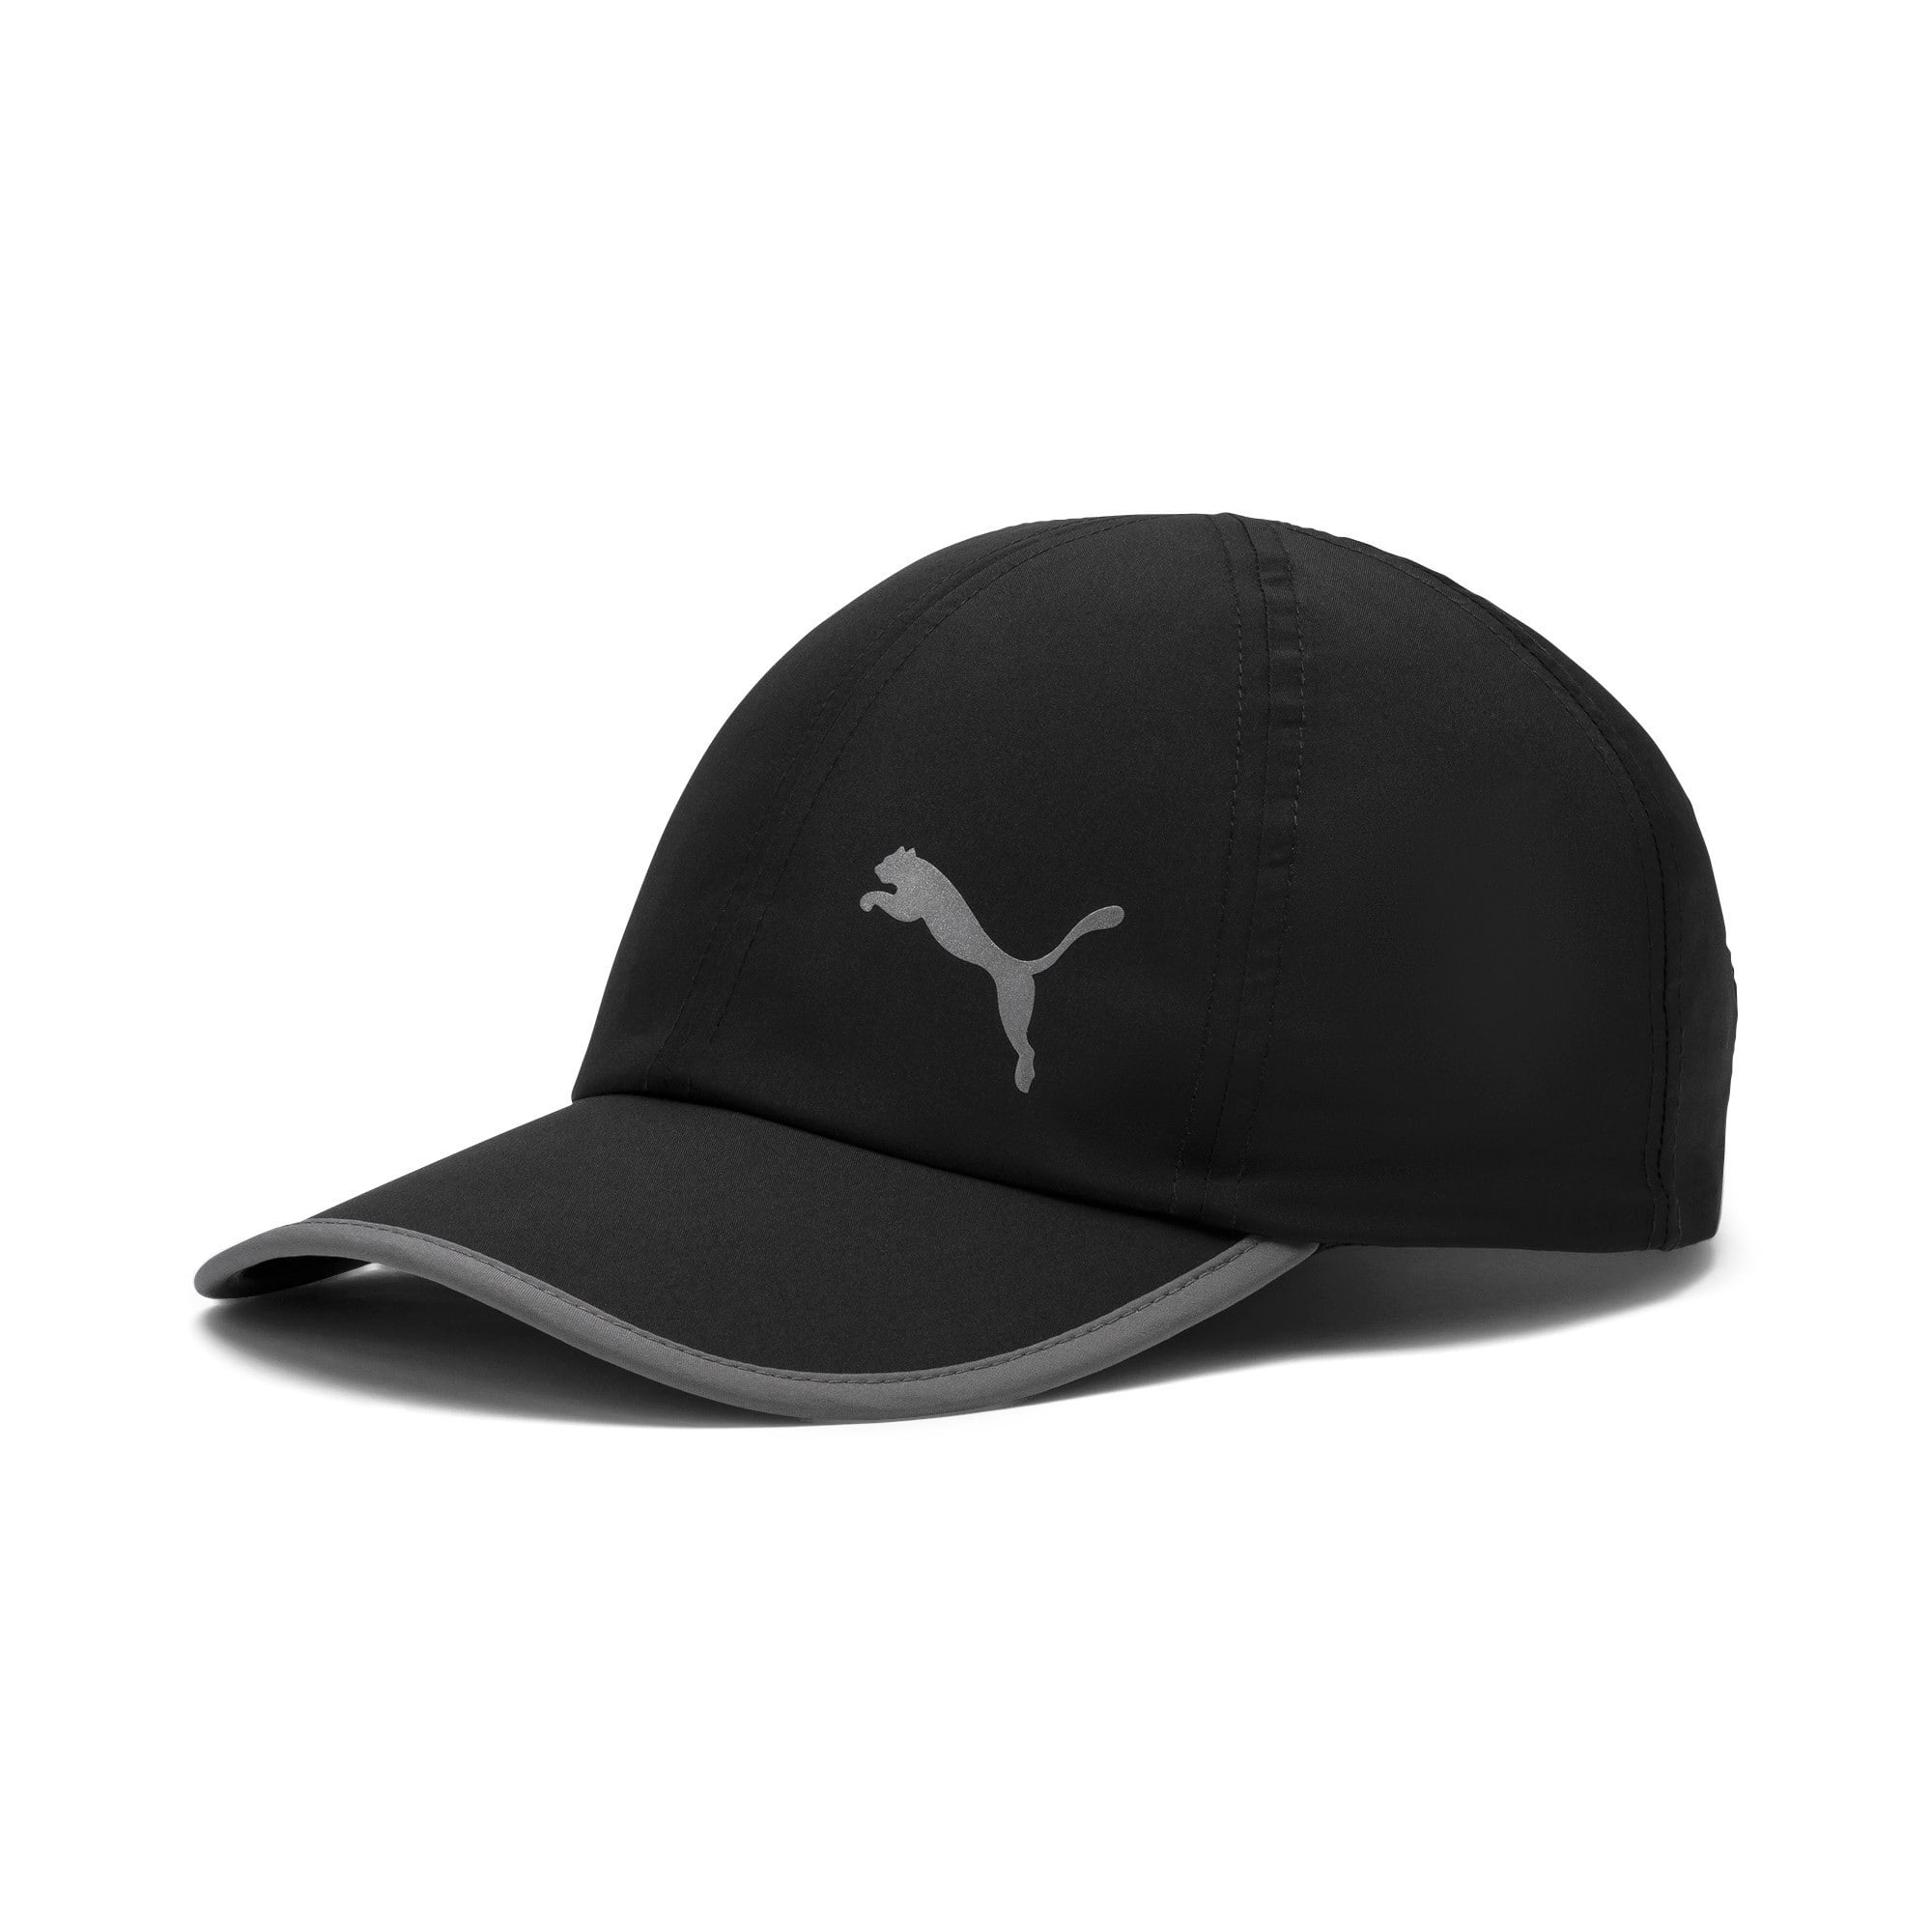 Thumbnail 1 of ESS Running Cap, Puma Black-Cat, medium